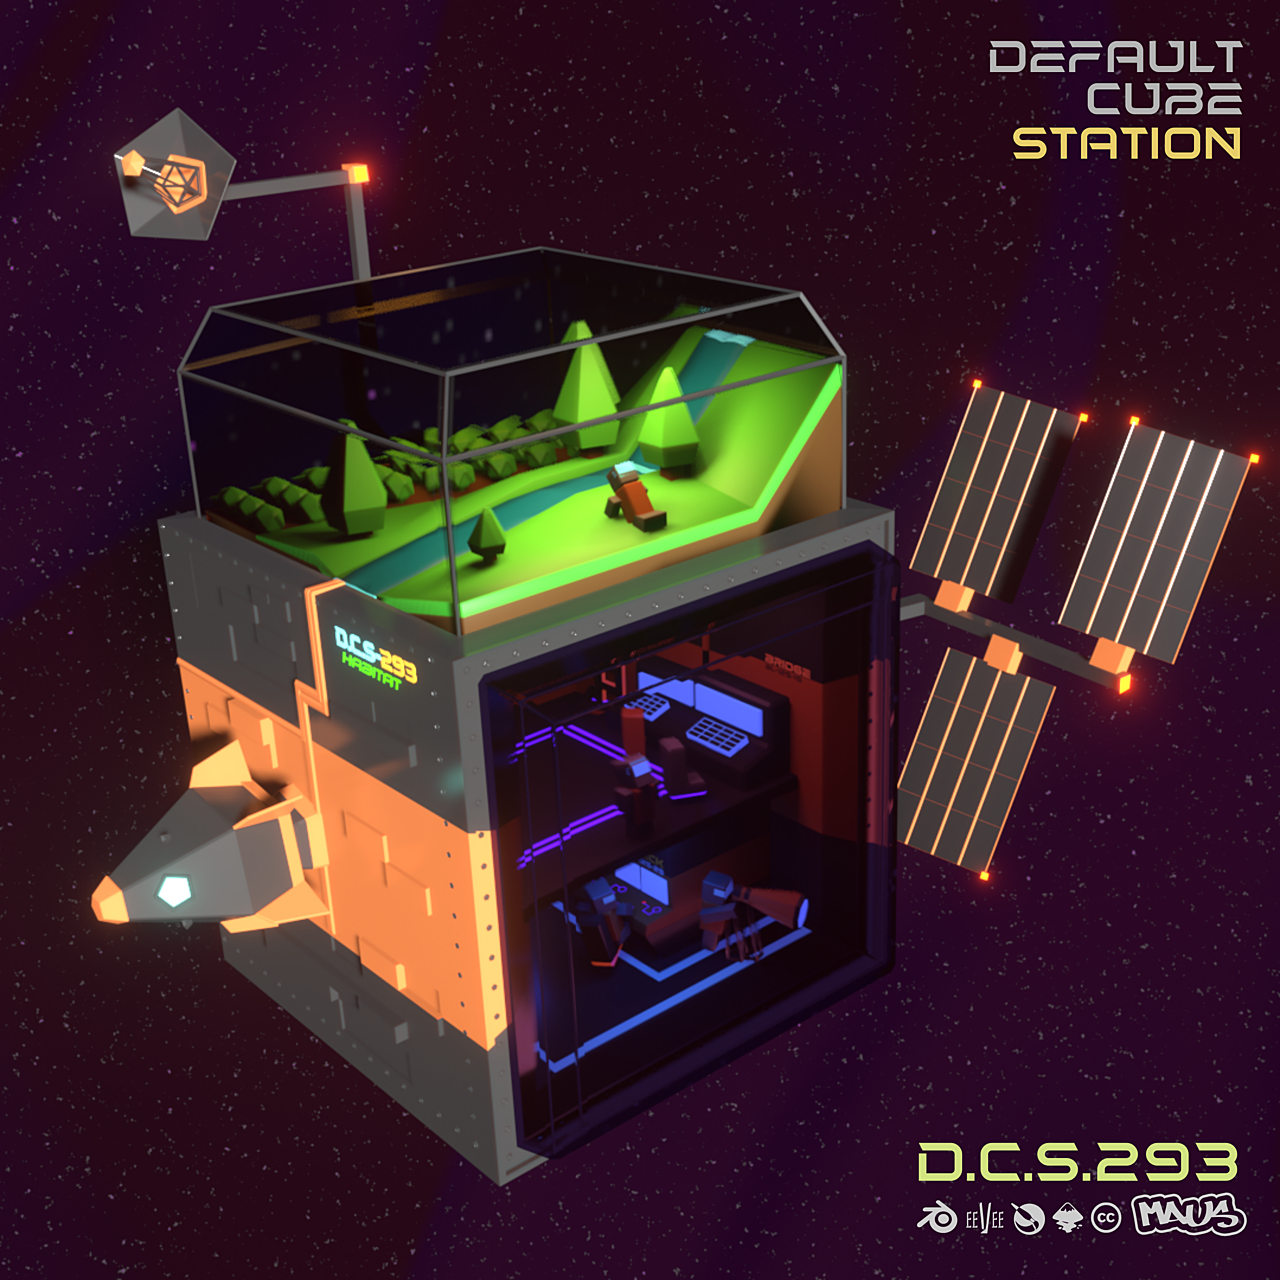 Space Station Challenge 2021  - The Default Cube Station